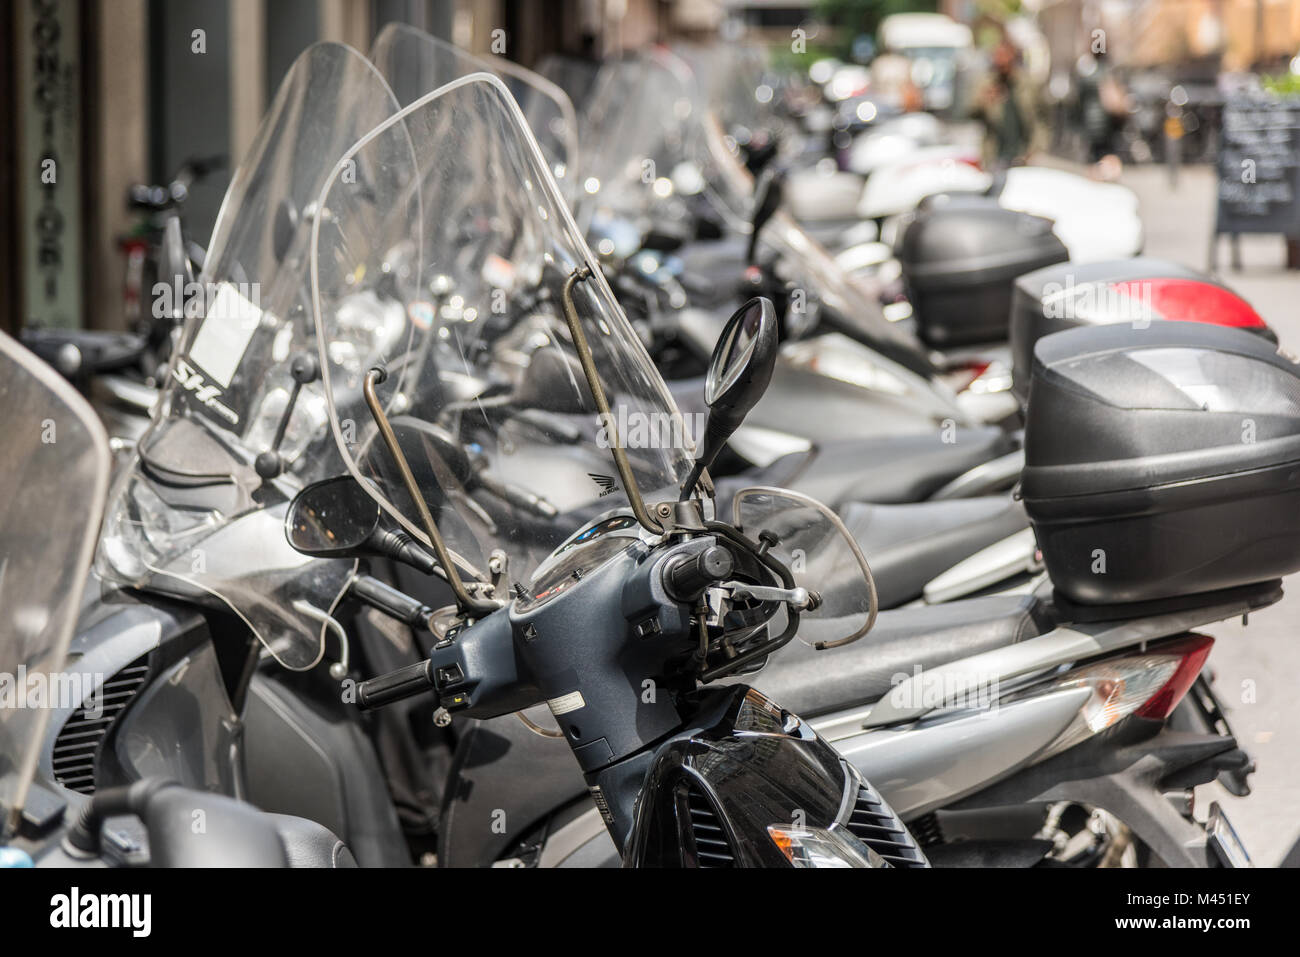 Rows of parked motorbikes and scooters in a street in the city of Bologna Italy - Stock Image